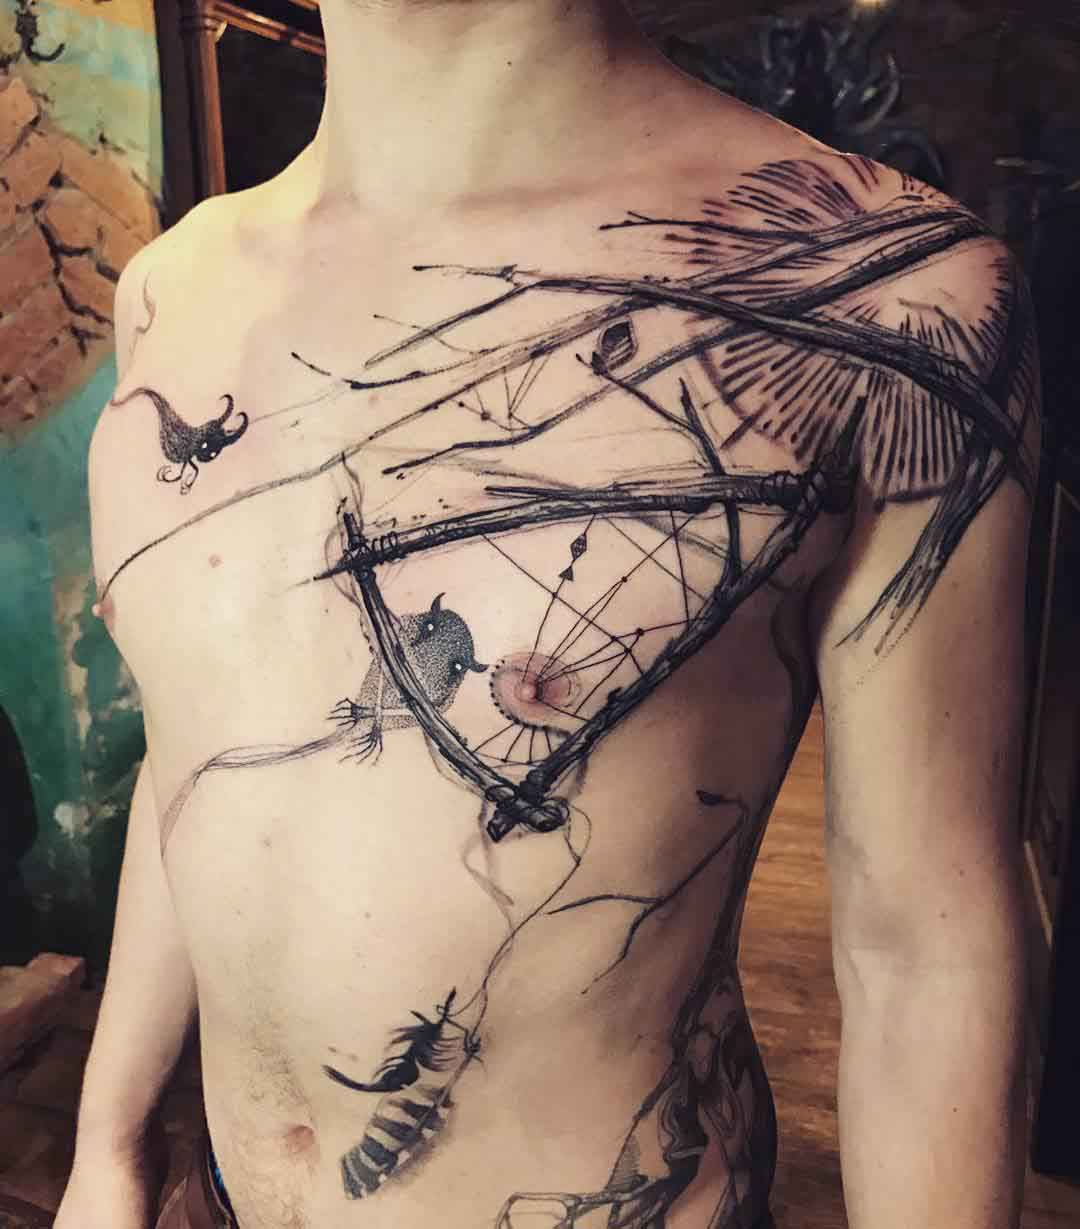 Awesome Chest Tattoo and Torso